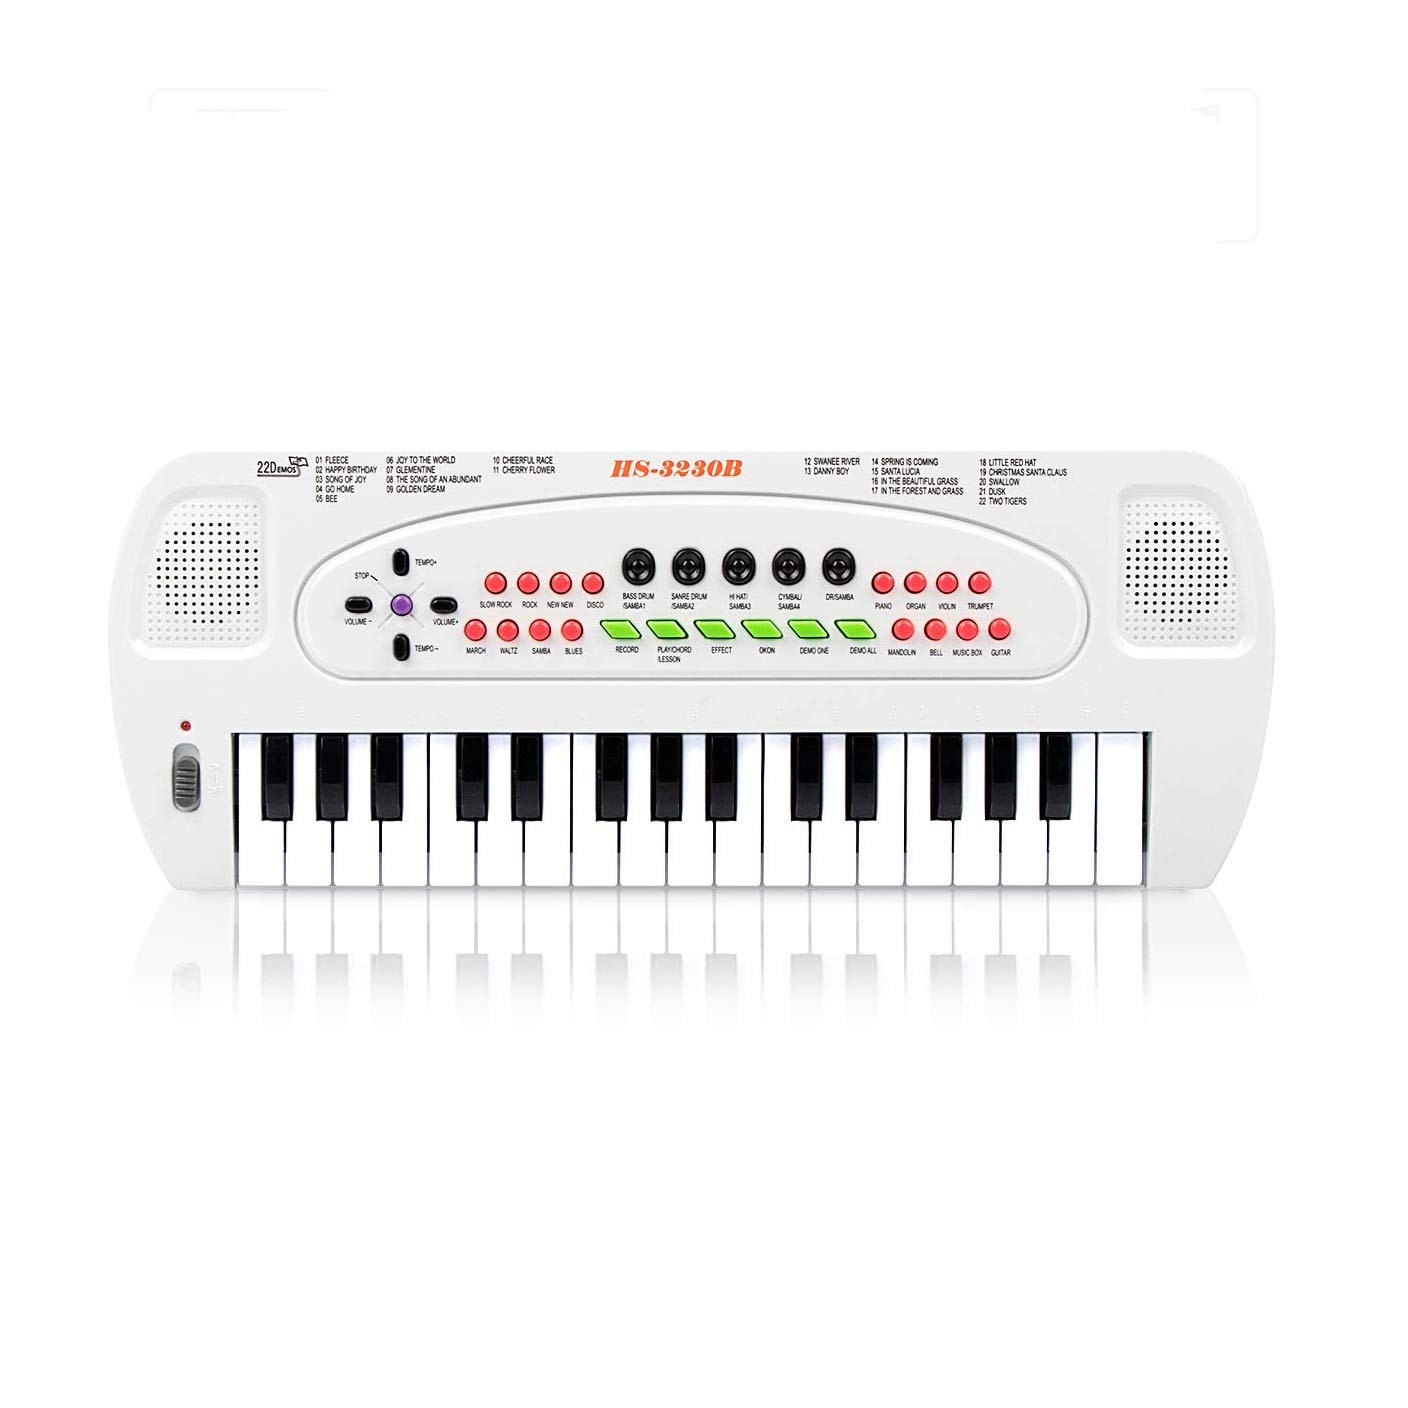 aPerfectLife 32 Keys Piano Keyboard for Kids Multifunction Portable Piano Electronic Keyboard Music Instrument for Kids Early Learning Educational Toy for 3-7 Year Old Girls Boys (White)